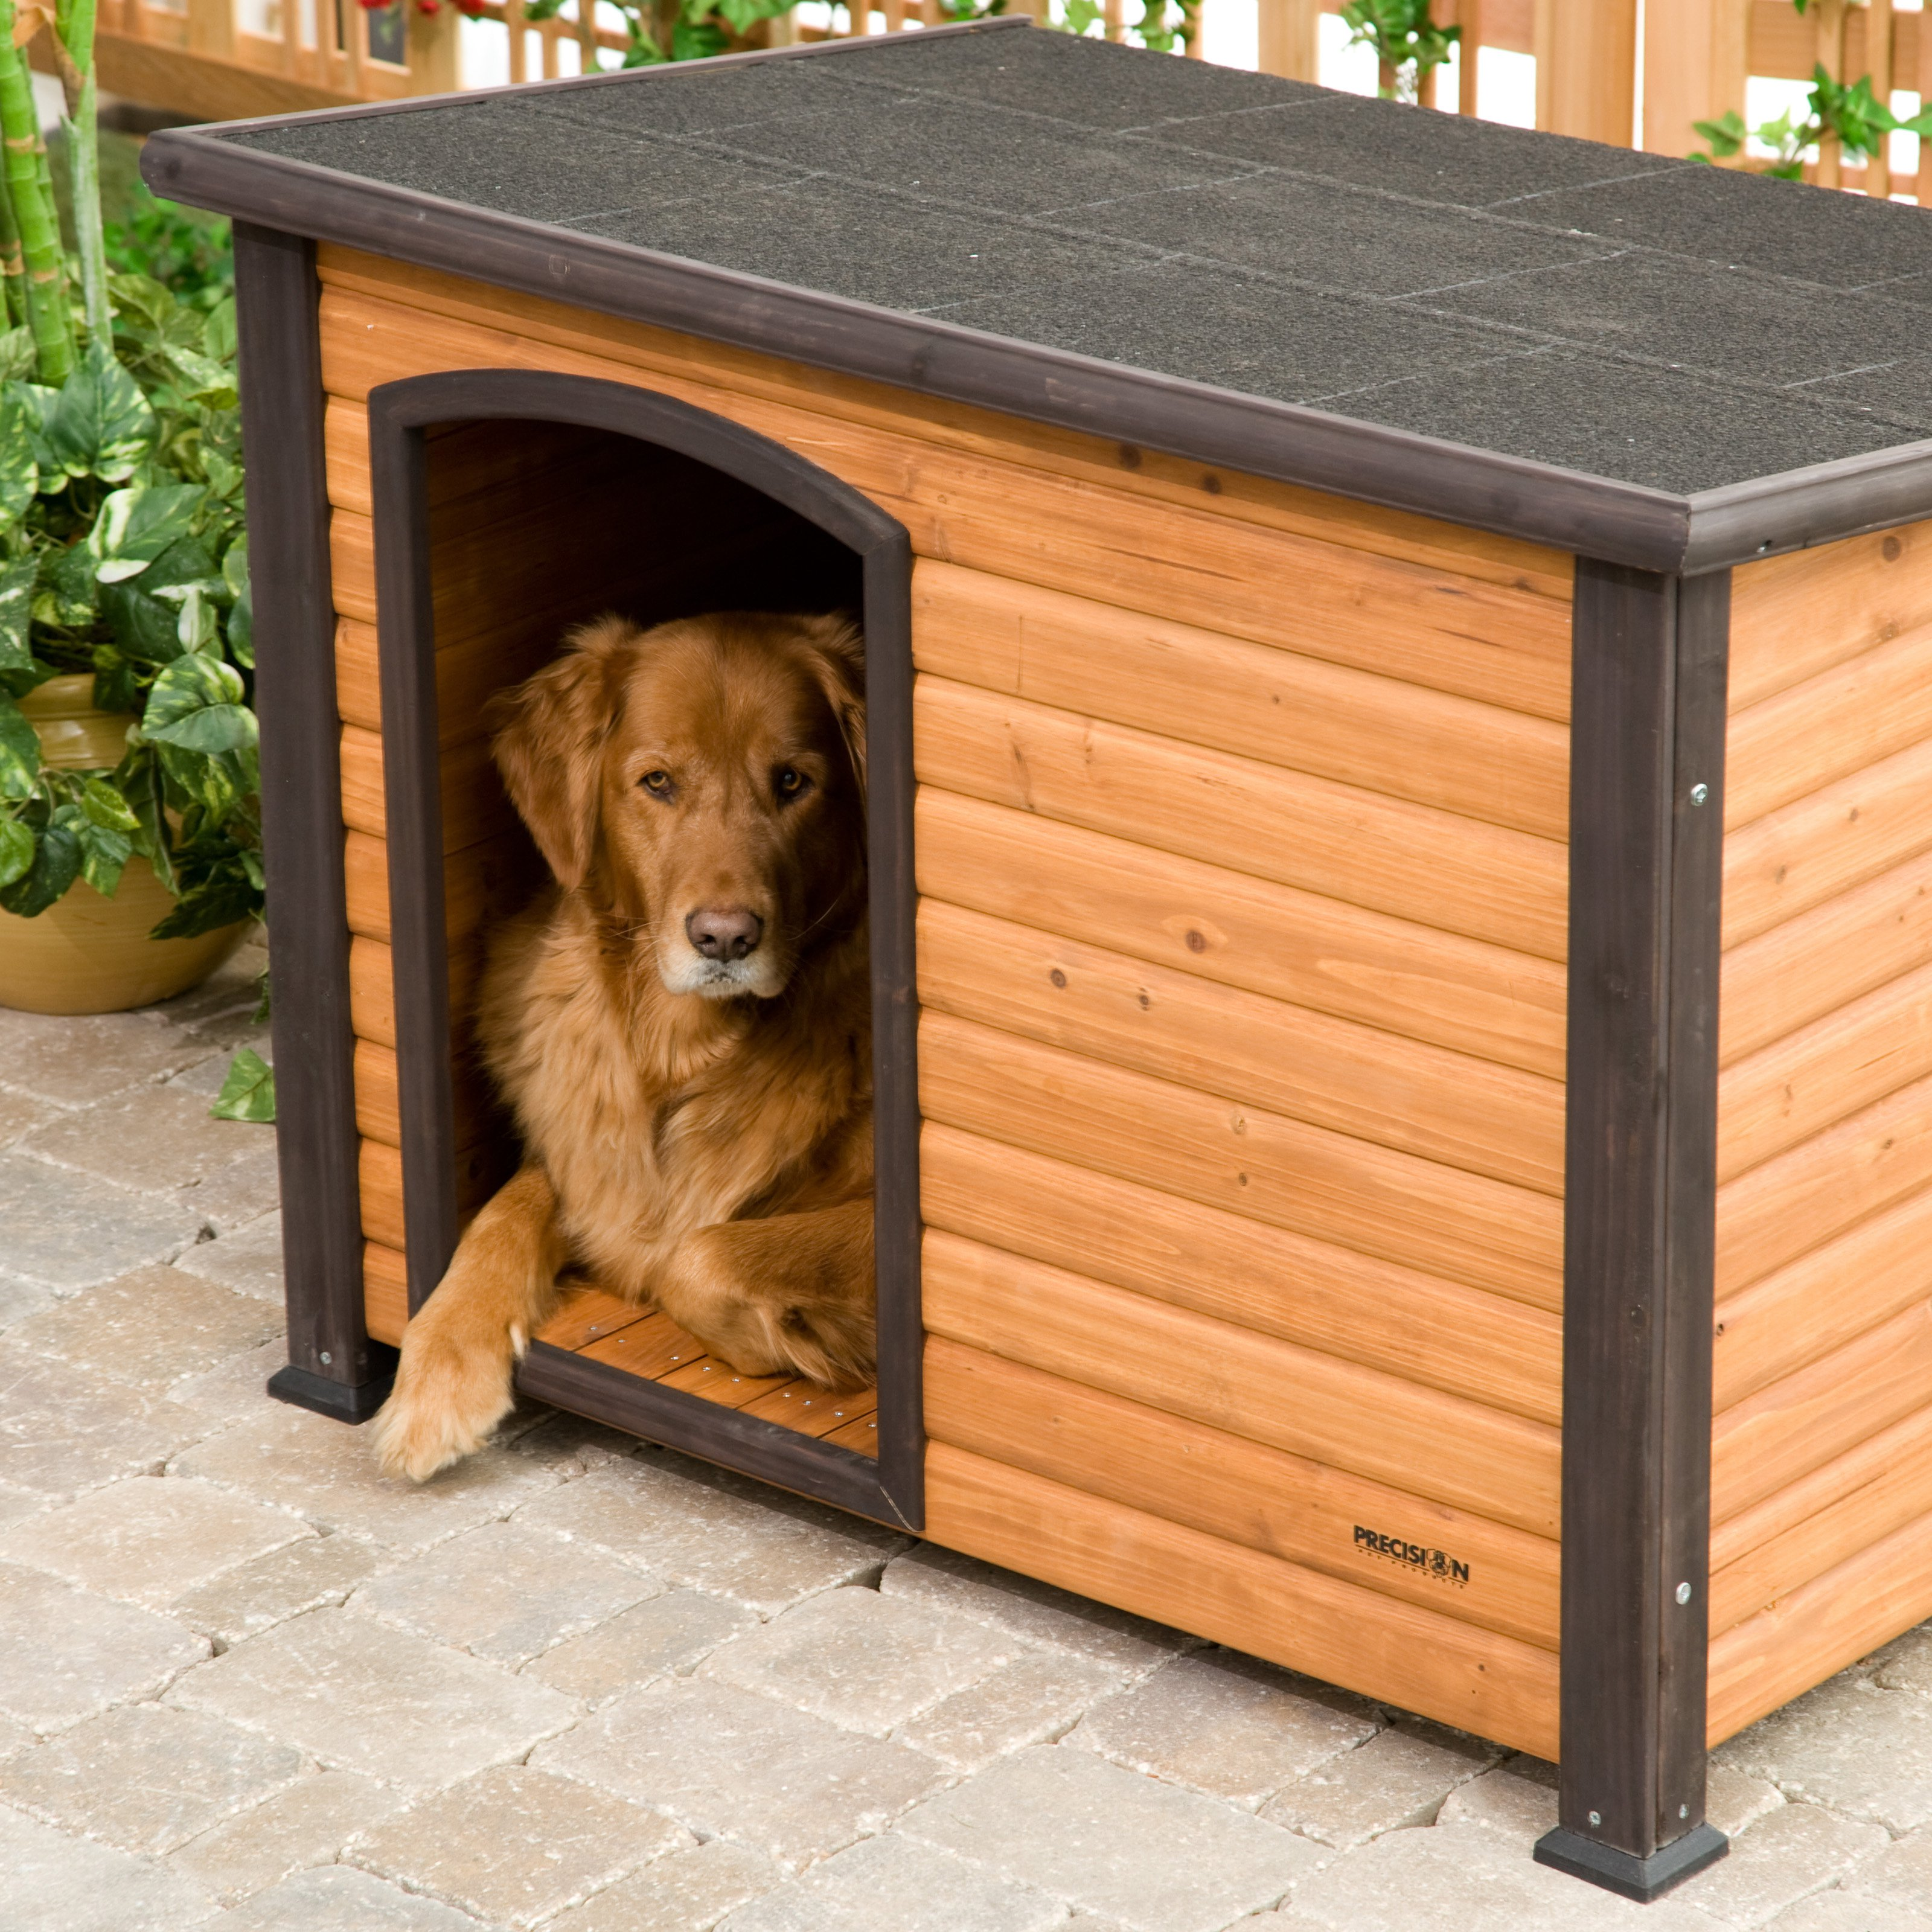 Dog House Precision Extreme Outback Log Cabin Dog House